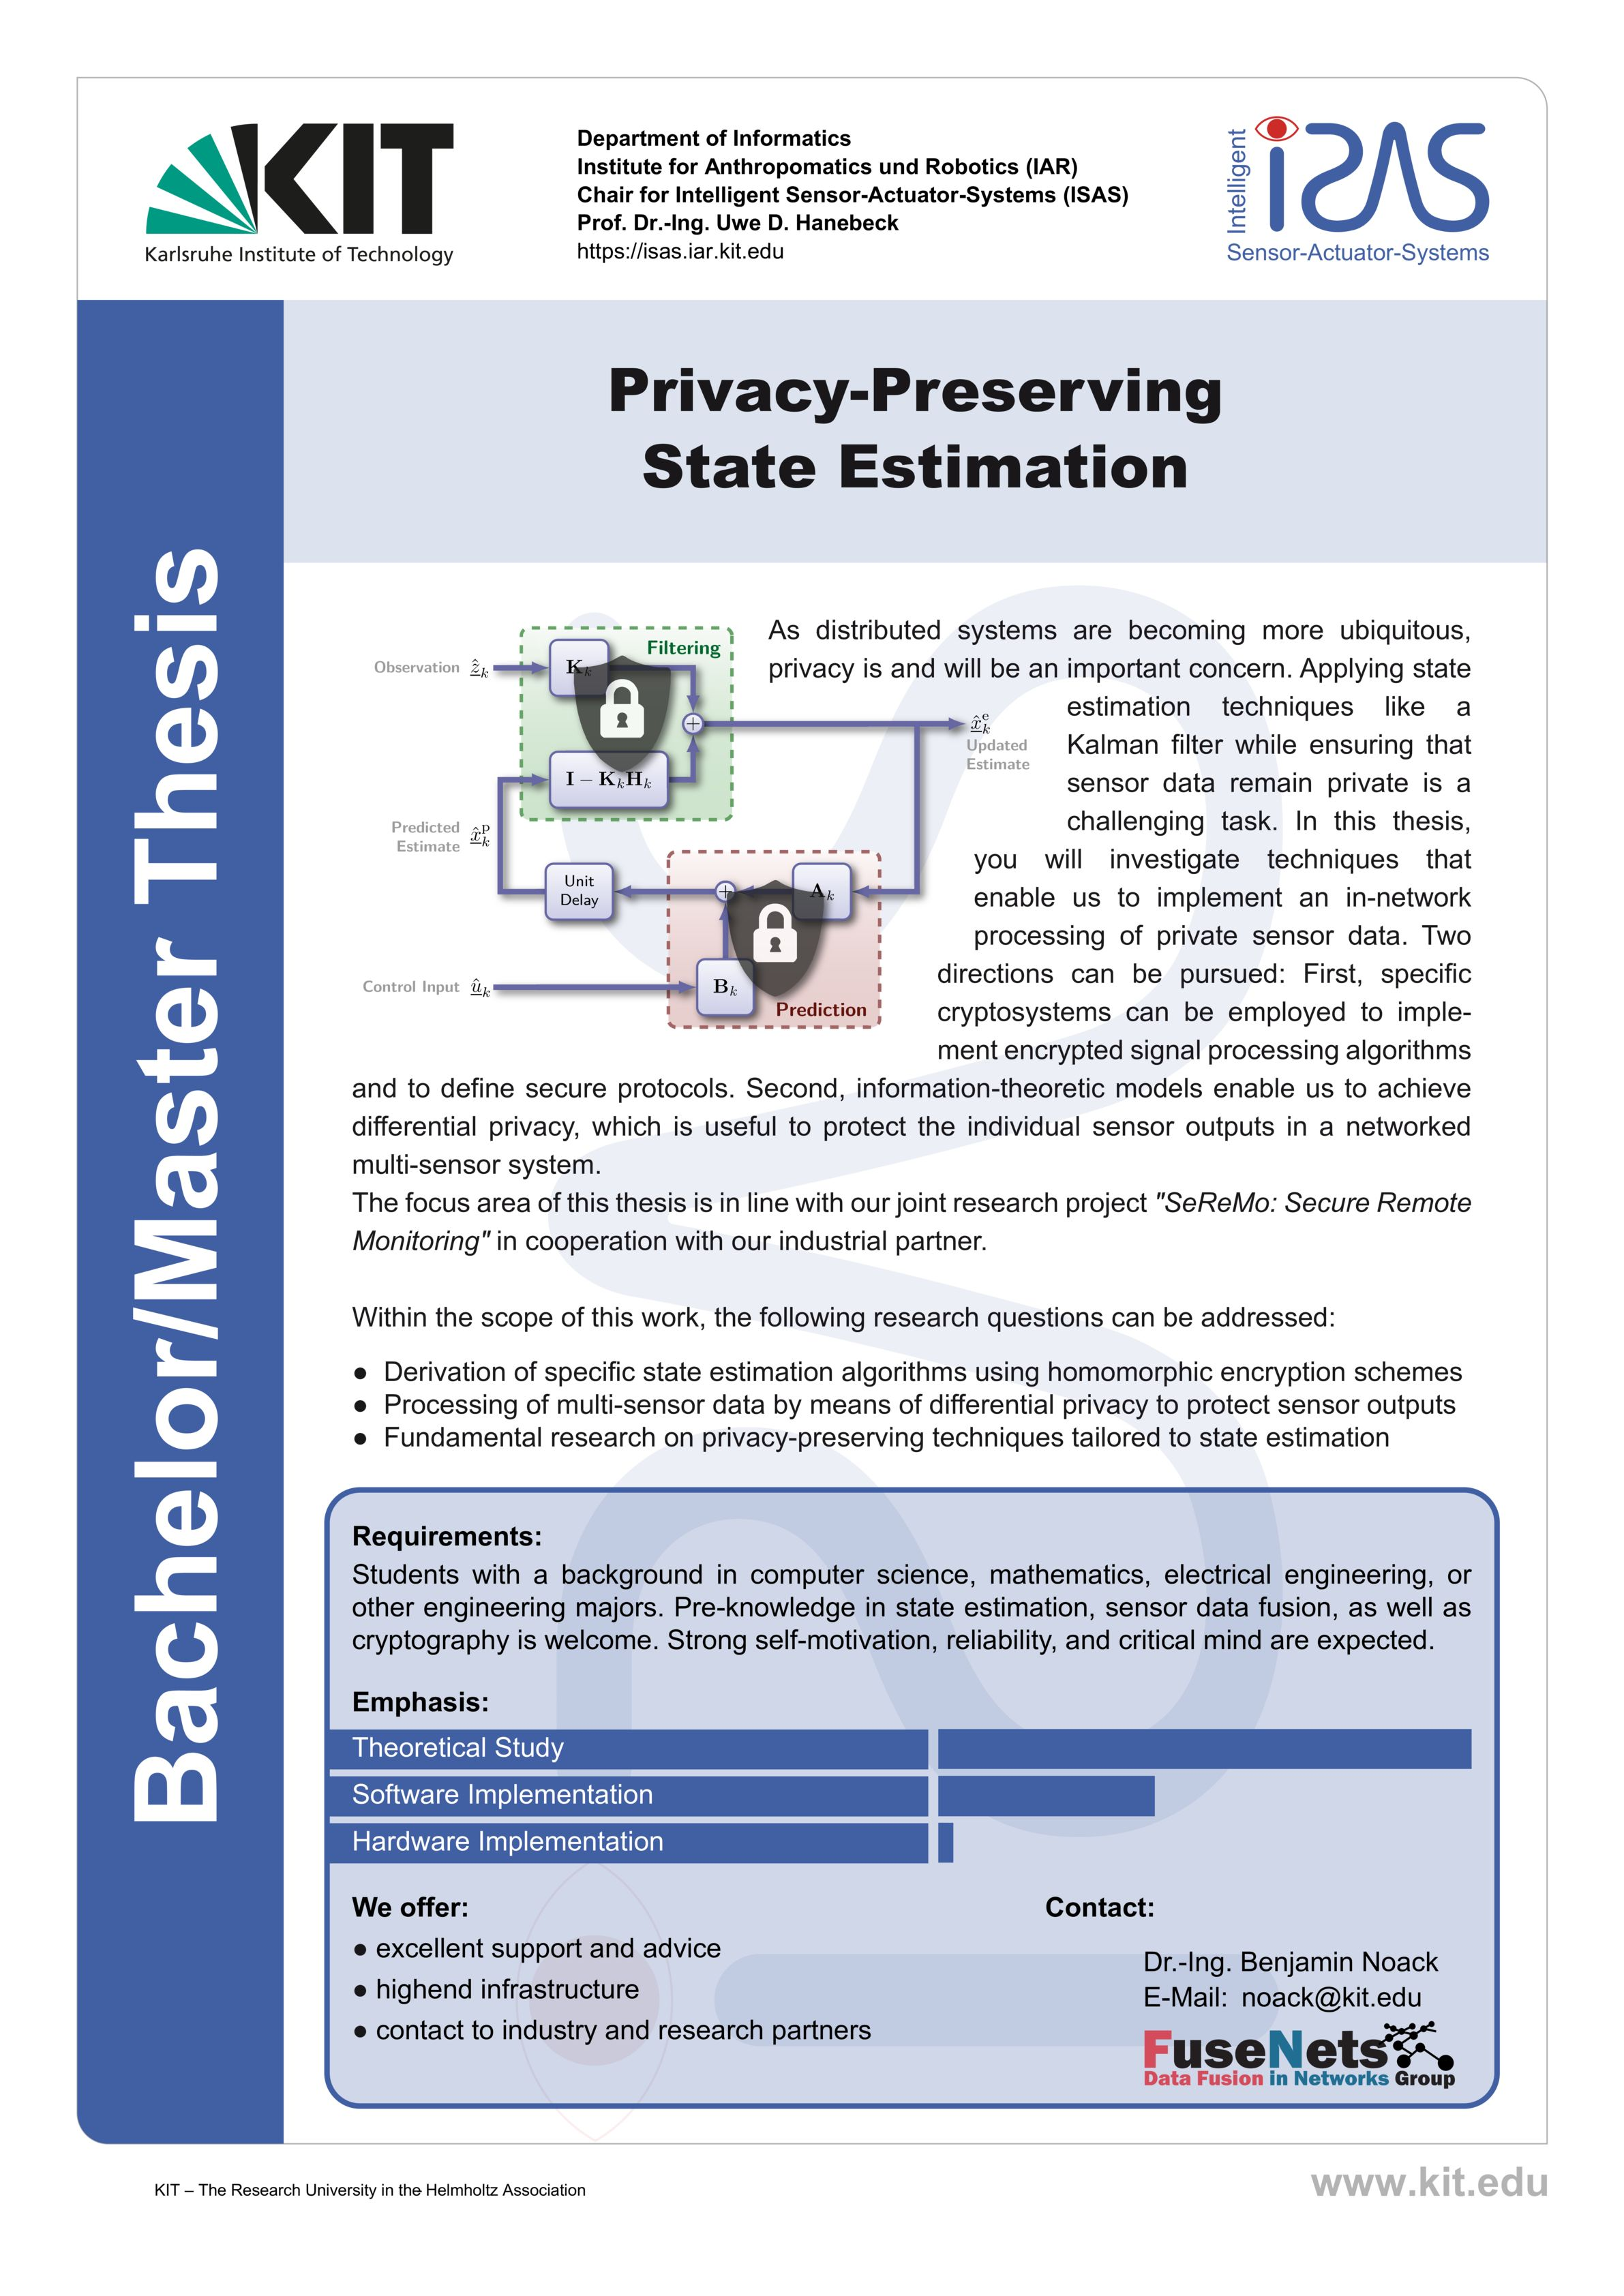 Privacy-Preserving State Estimation